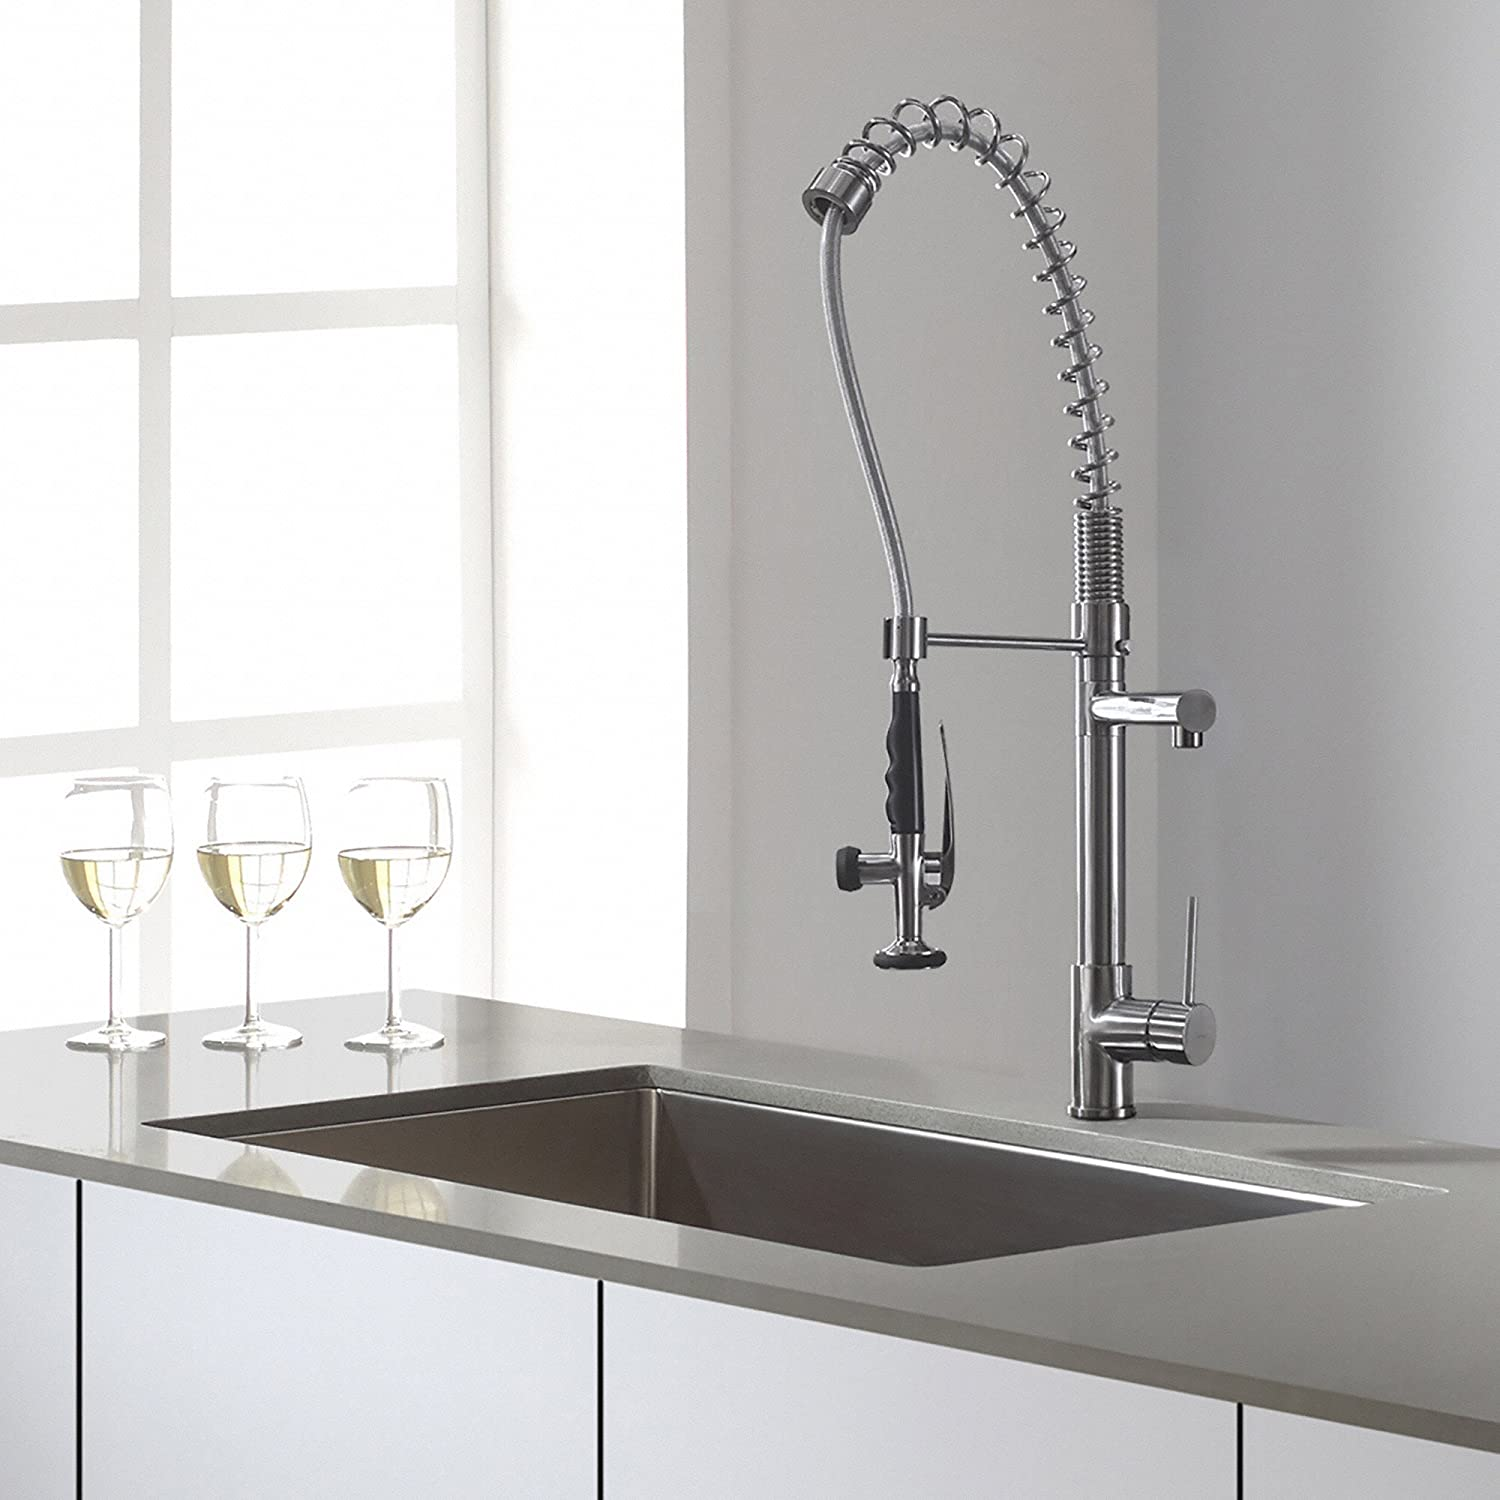 rachel enchanting pull collection charming fixtures faucet light spring best down and pictures chrome kitchen with